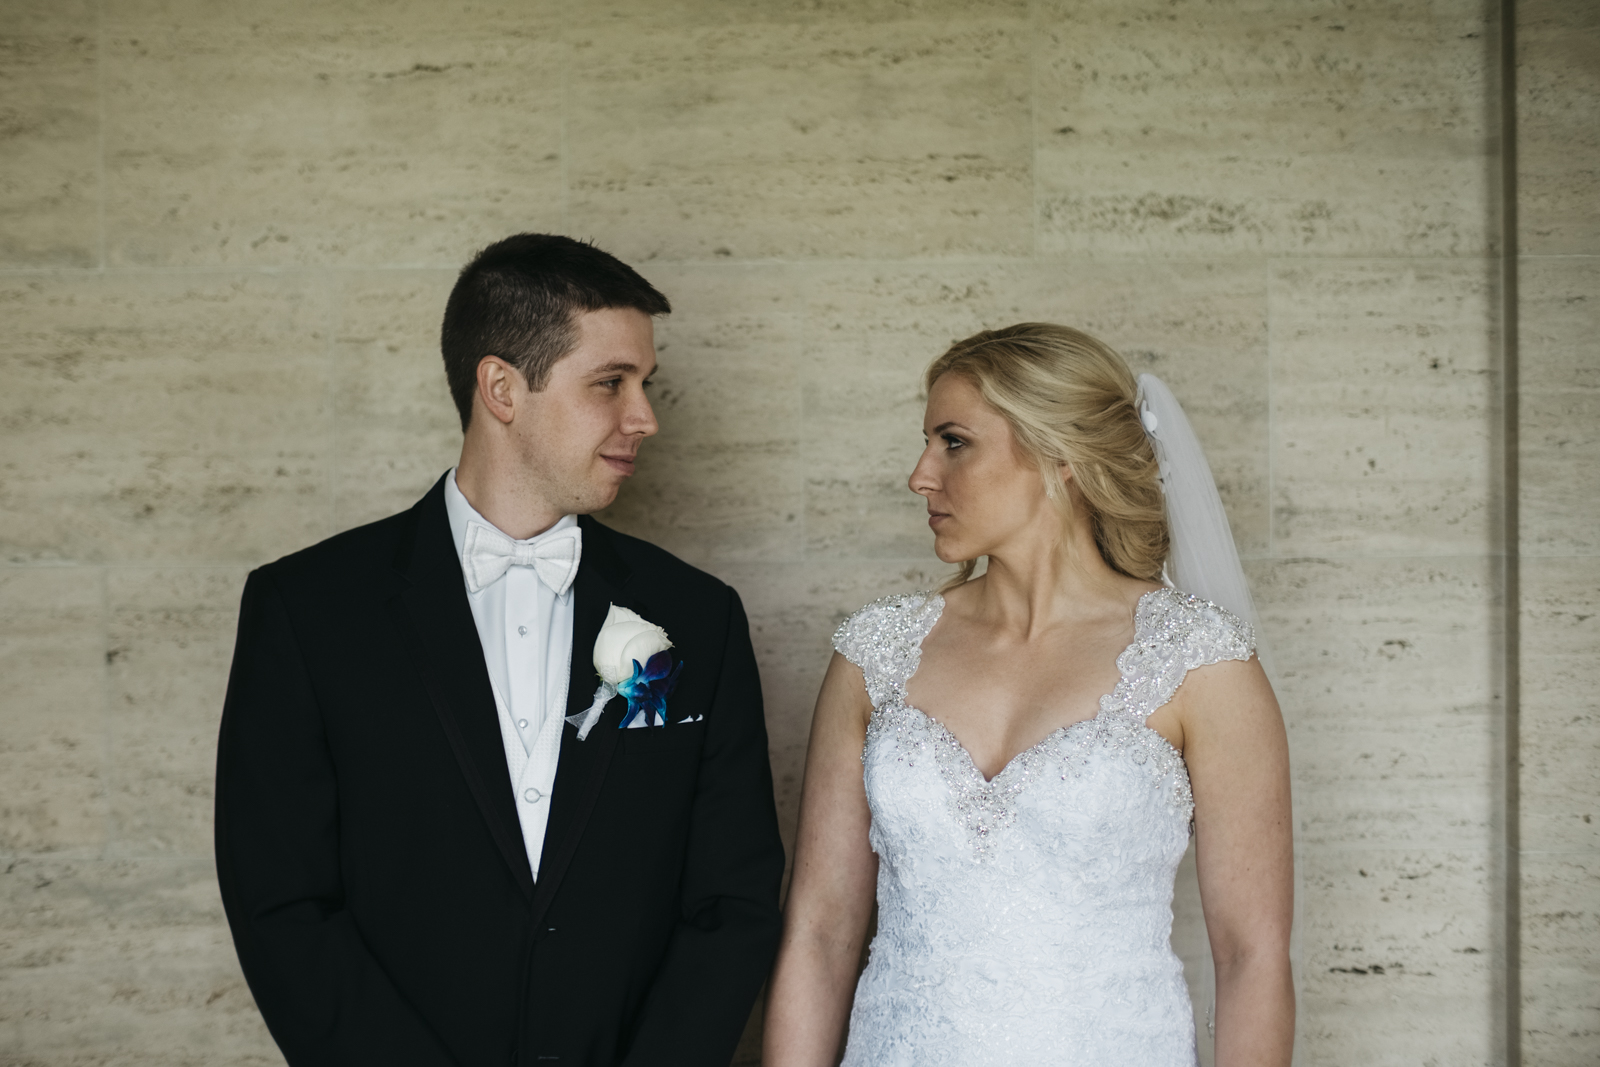 Bride and groom portraits at The Inn at St. John's.